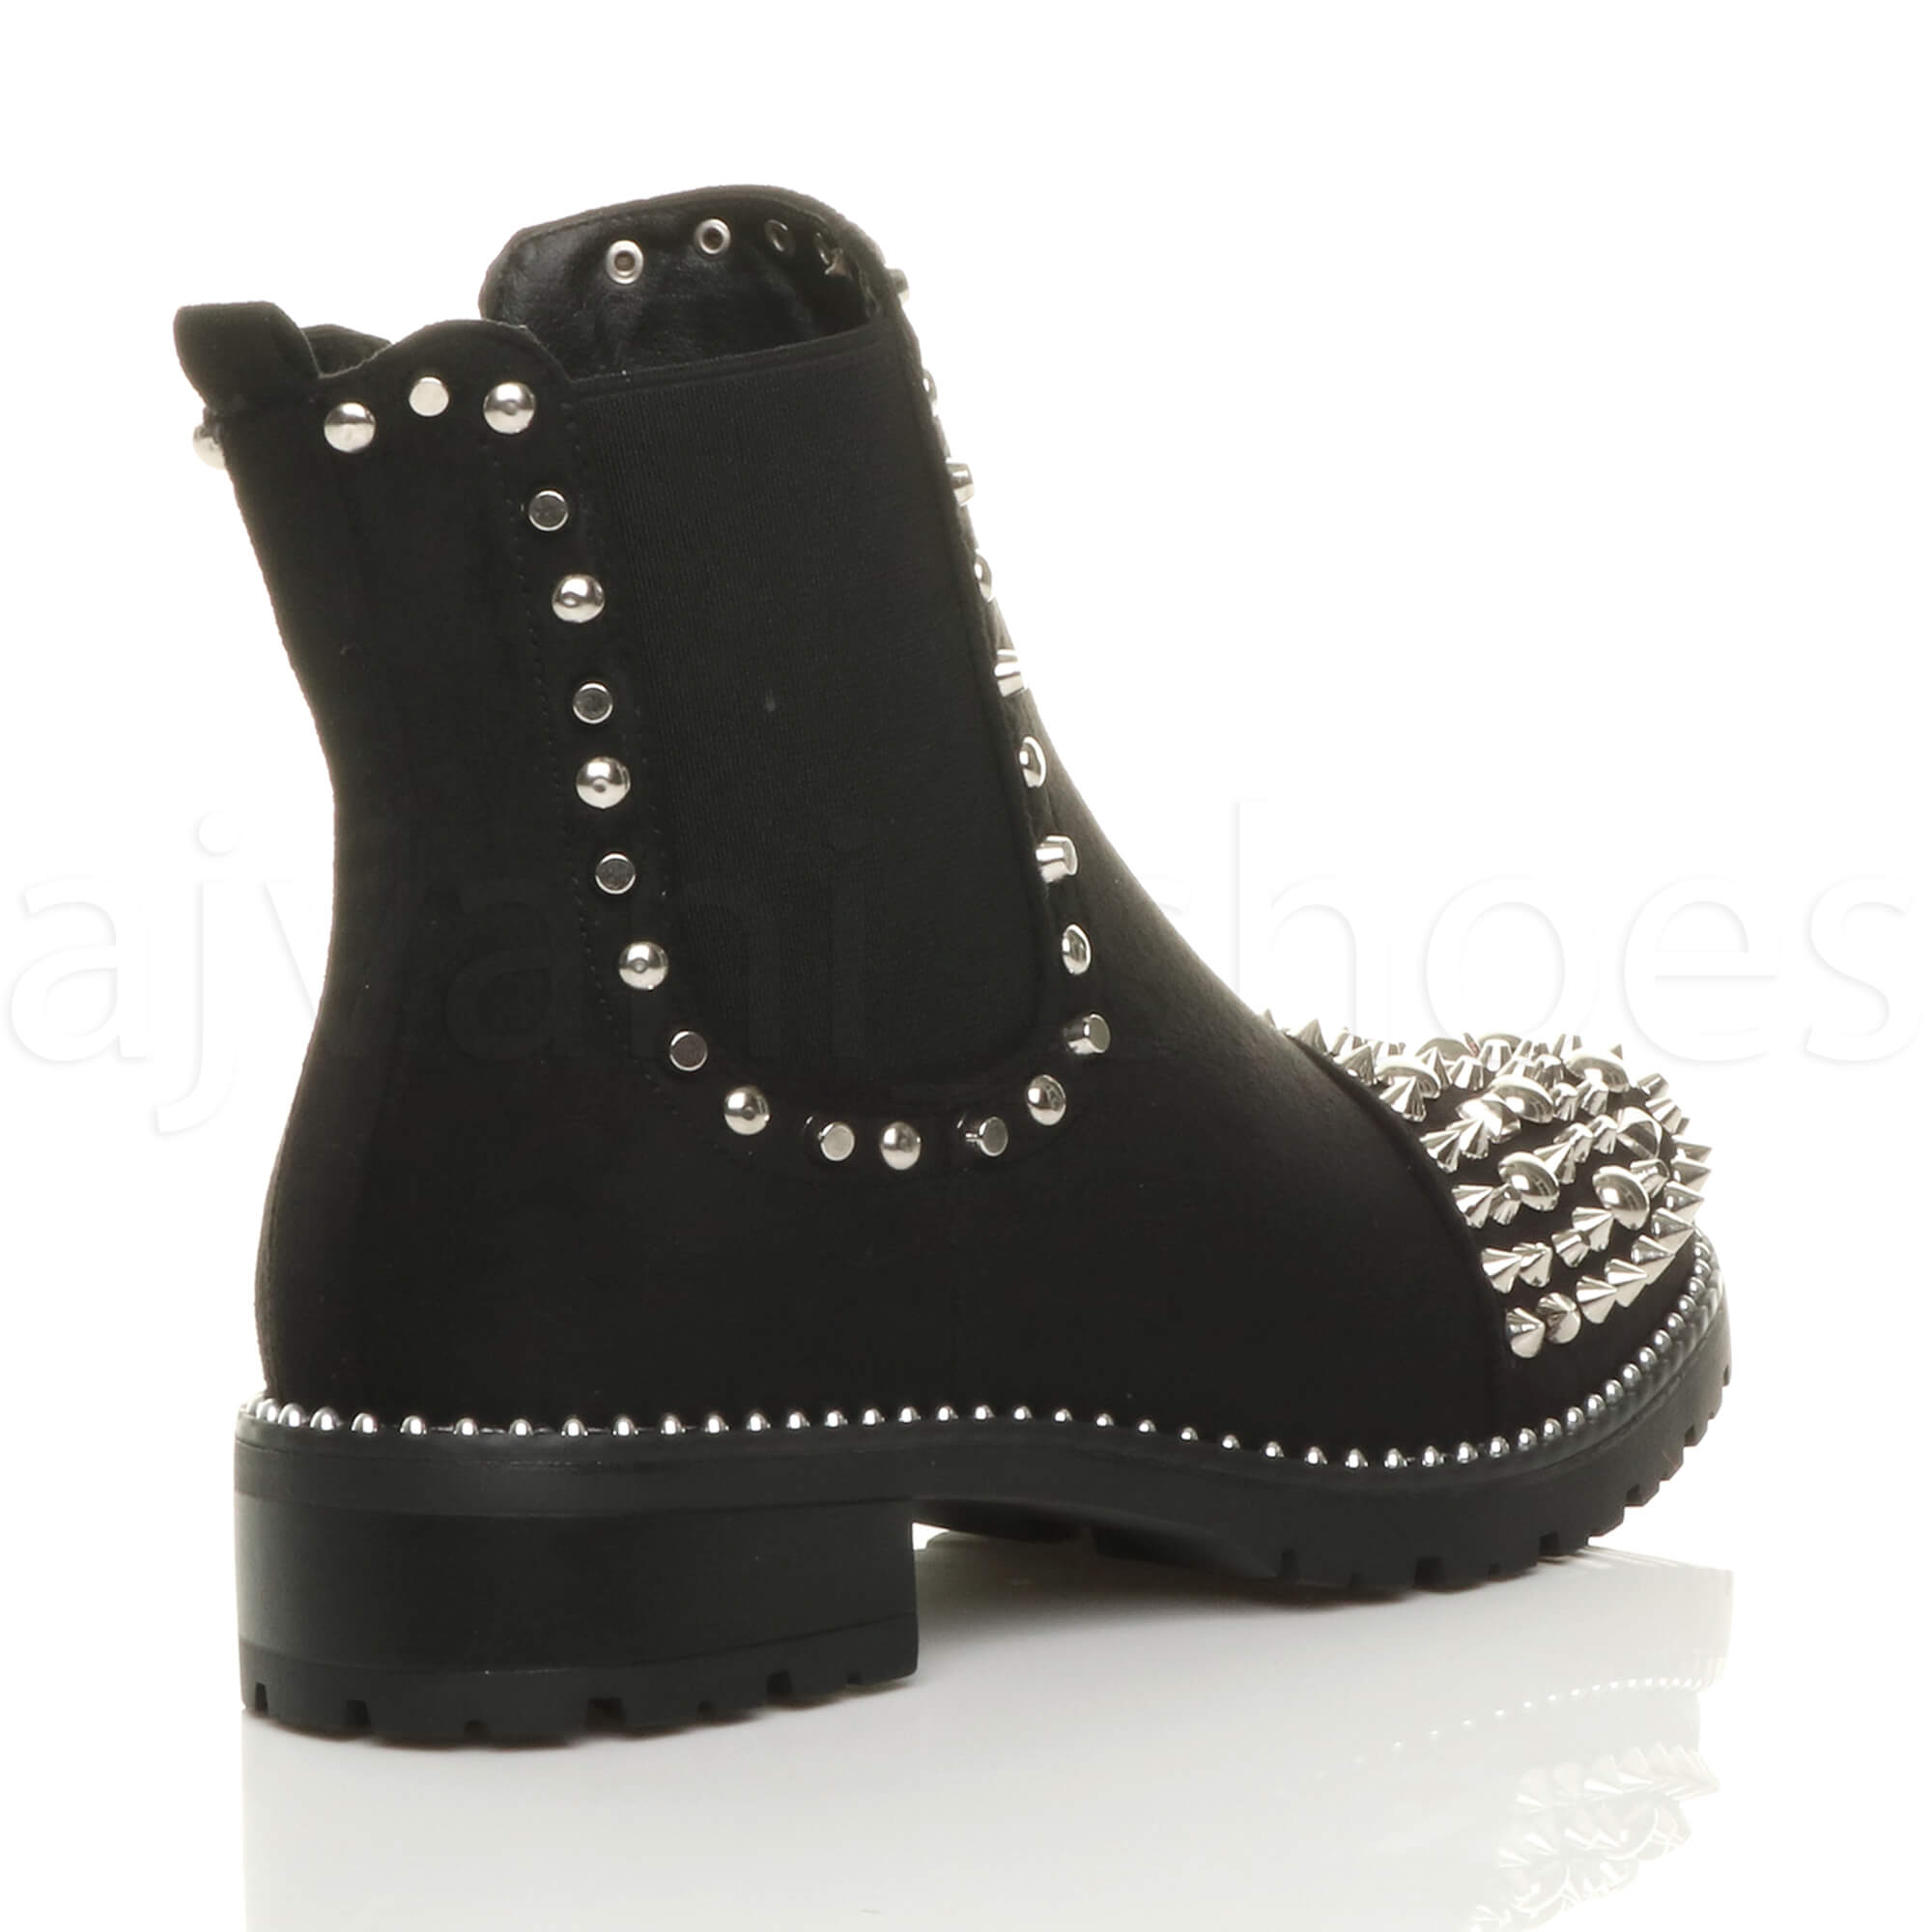 WOMENS-LADIES-LOW-HEEL-GOTH-PUNK-ROCK-STUDDED-GUSSET-CHELSEA-ANKLE-BOOTS-SIZE